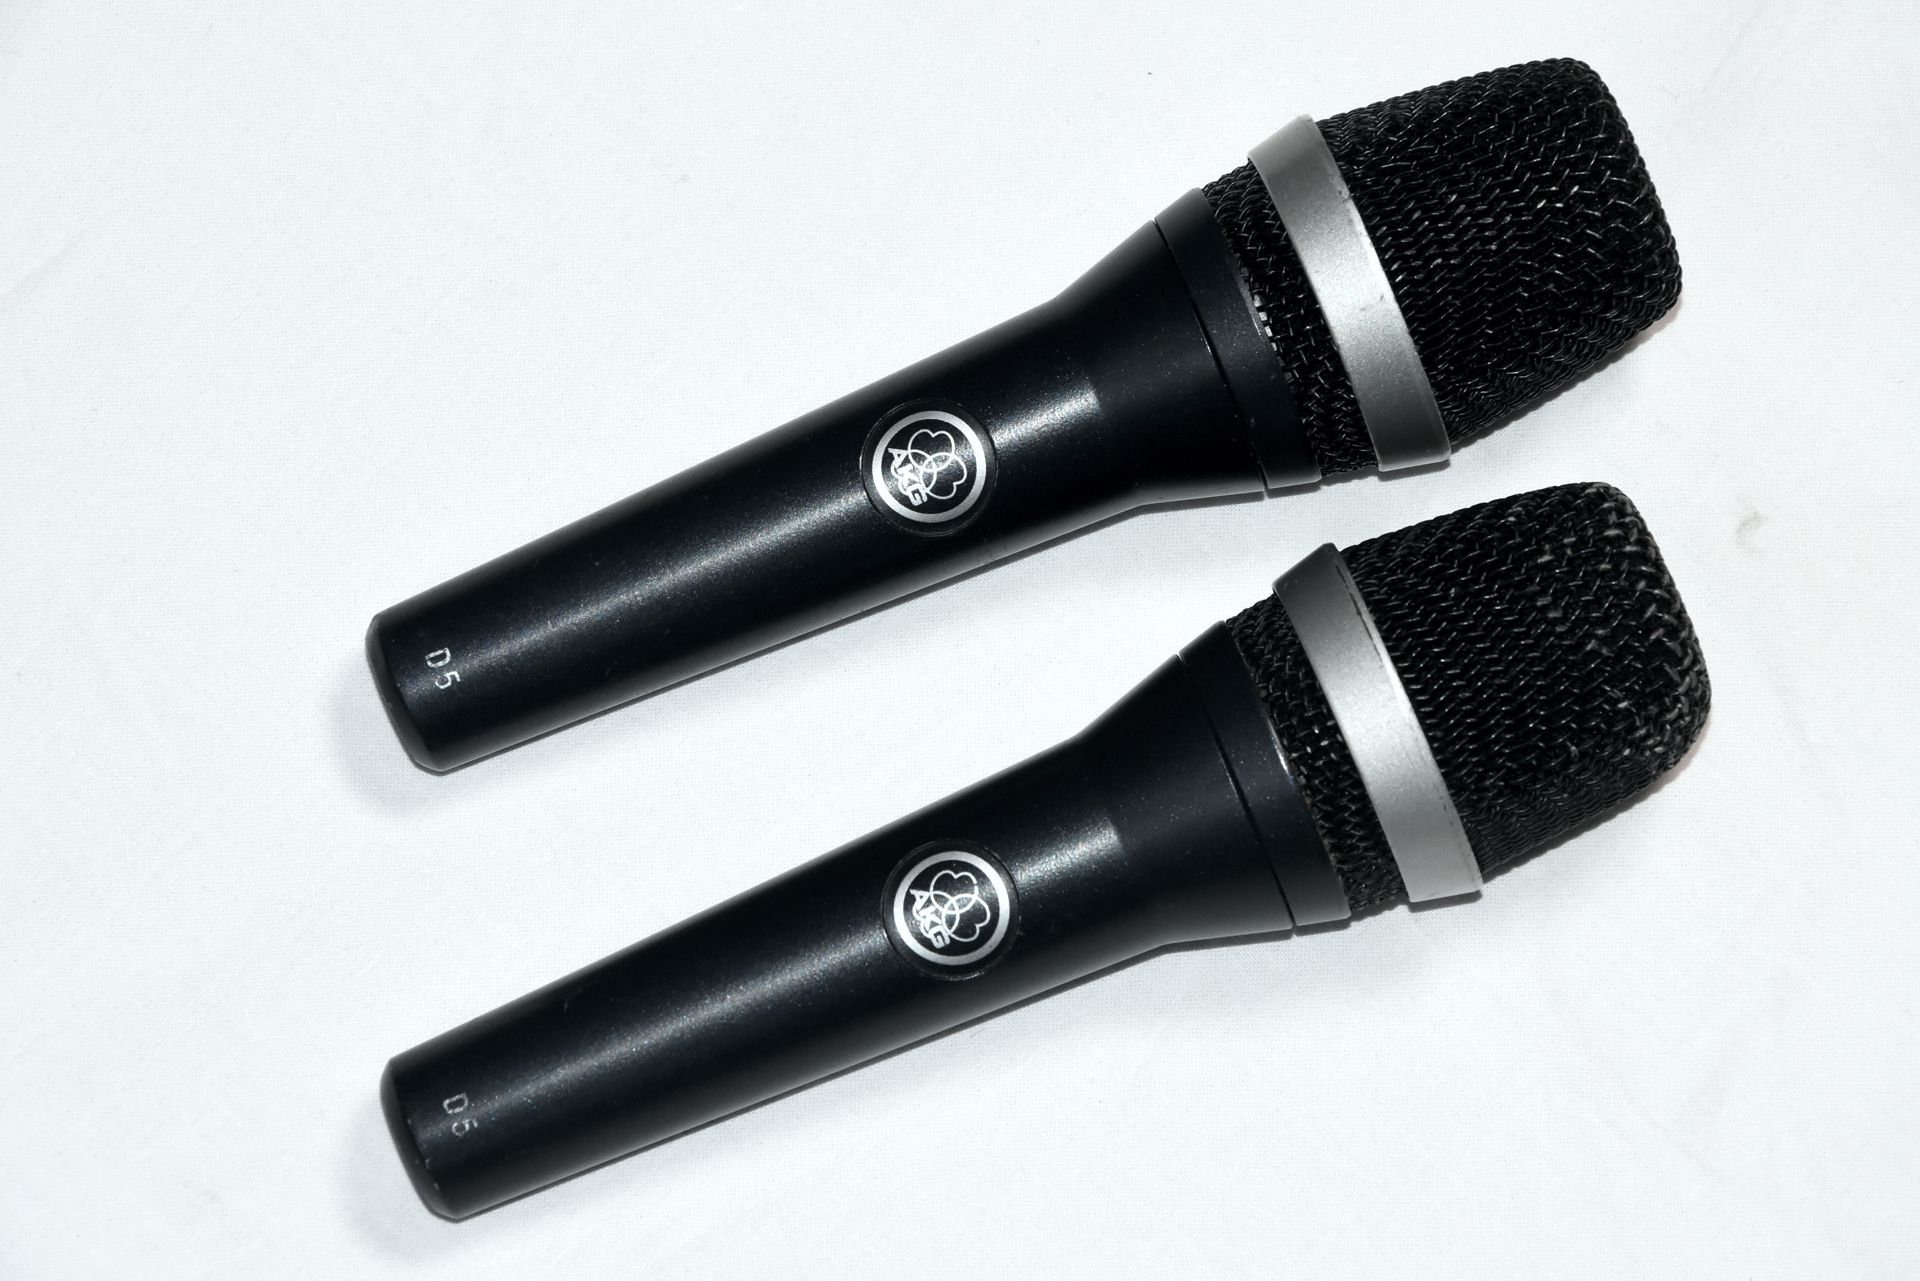 akg d5 microphone pair gearwise used av stage equipment. Black Bedroom Furniture Sets. Home Design Ideas